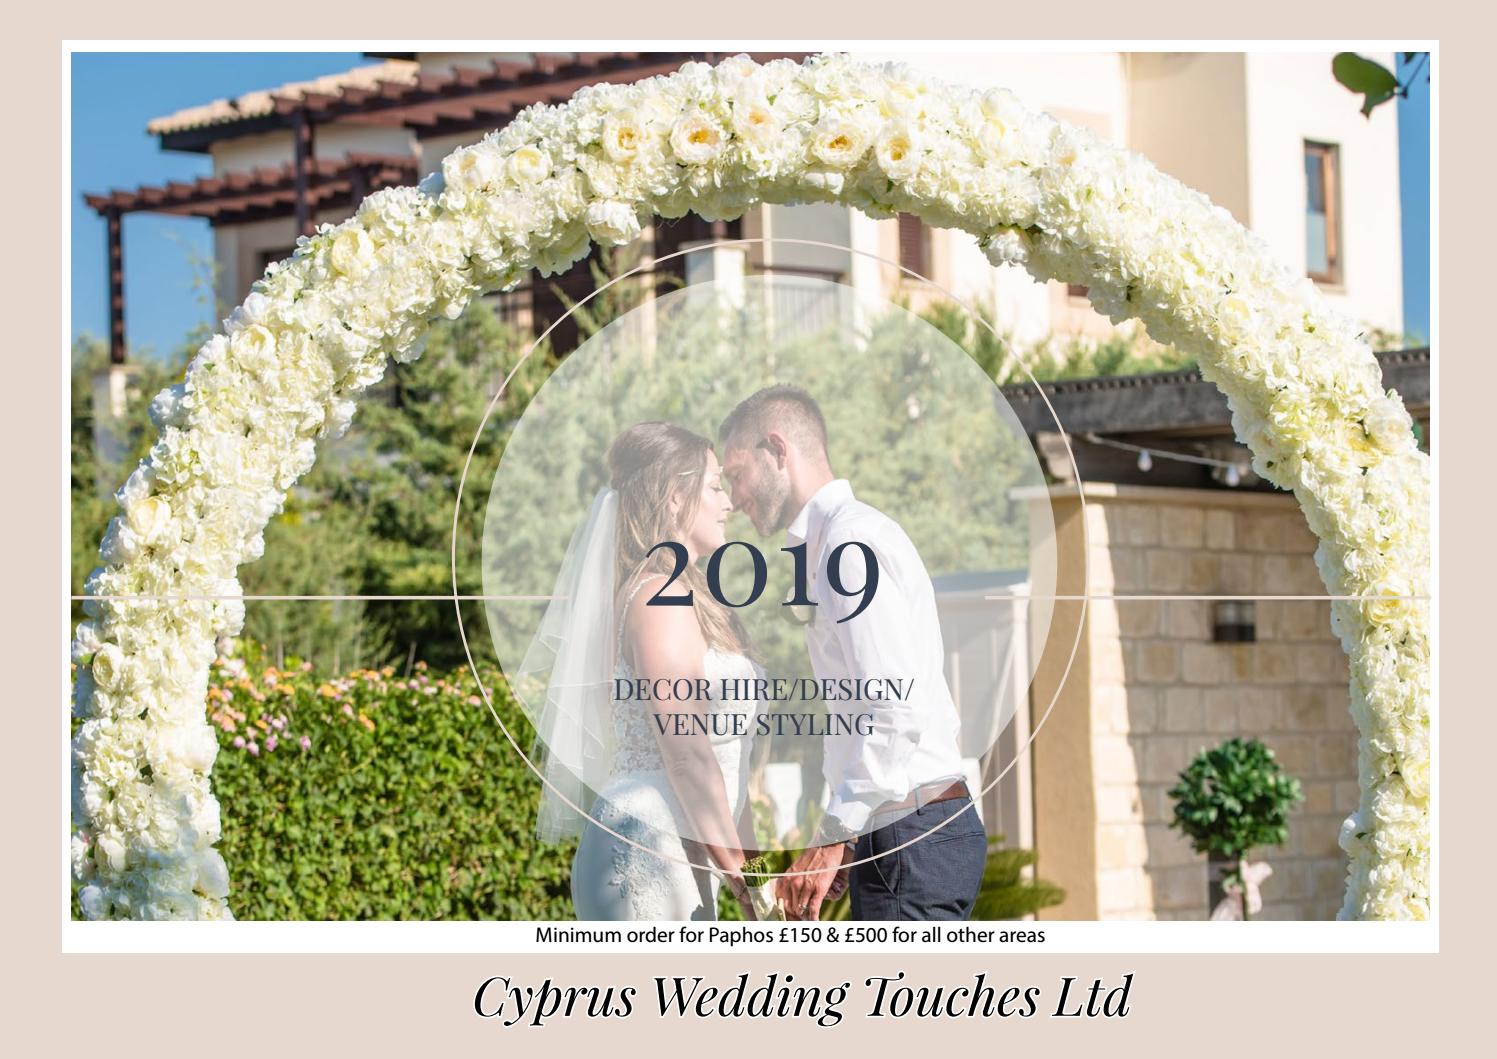 Cyprus Wedding Touches 2019 Decor Hire Brochure By